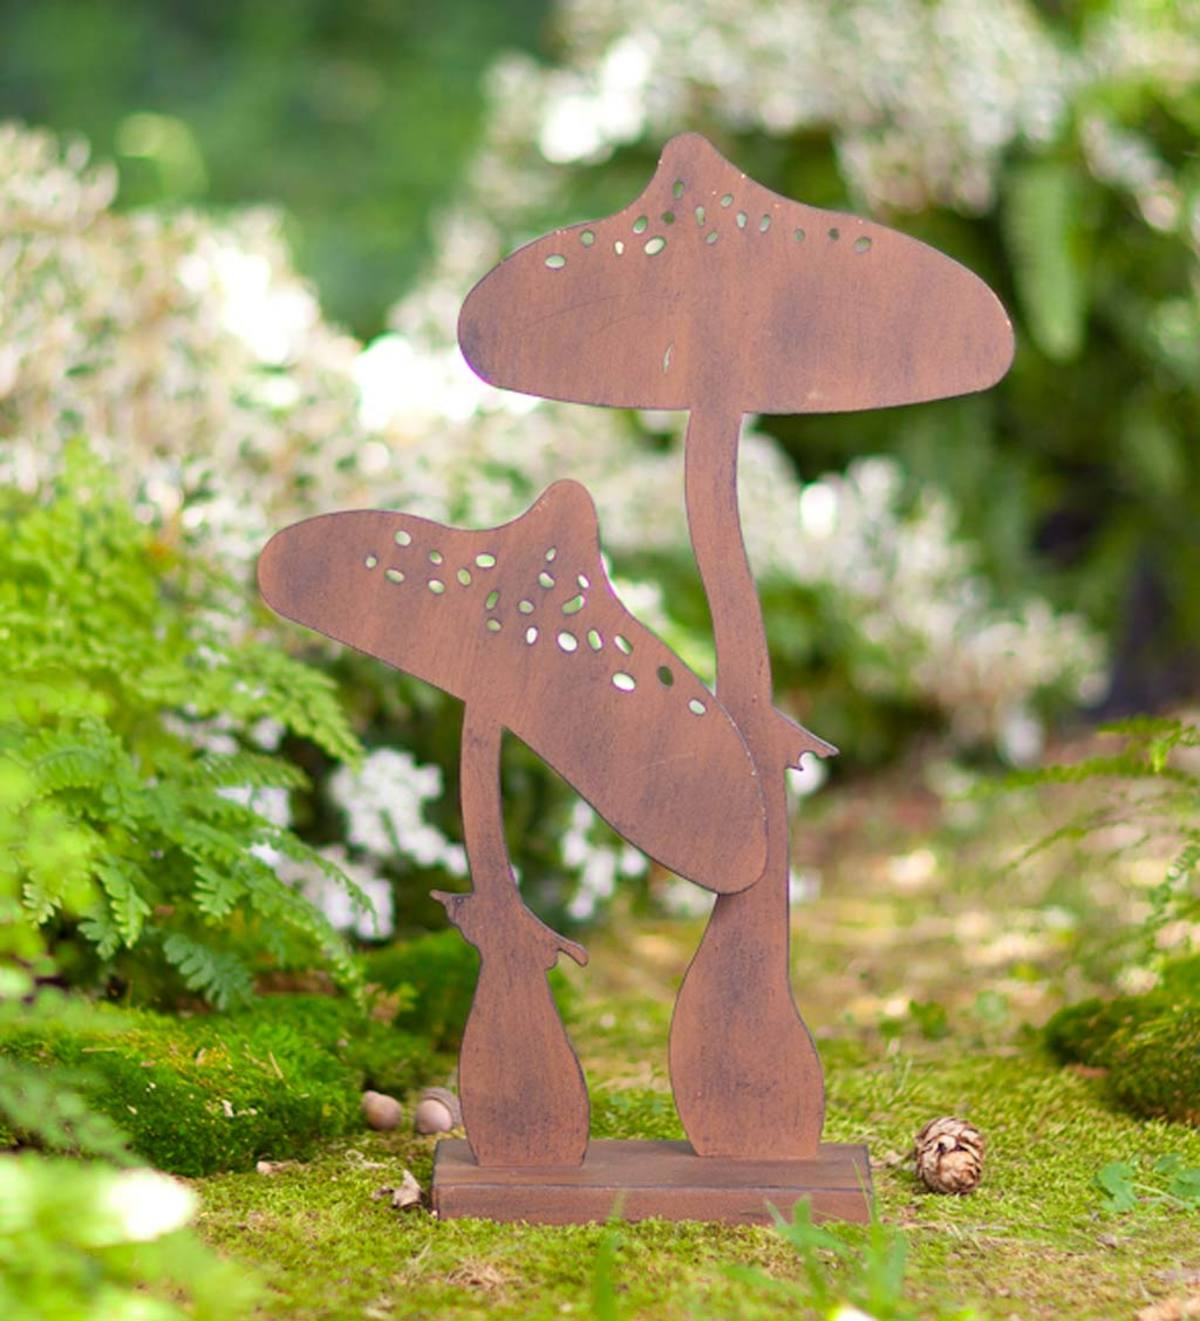 Two Mushroom Metal Silhouette with Rusted Finish